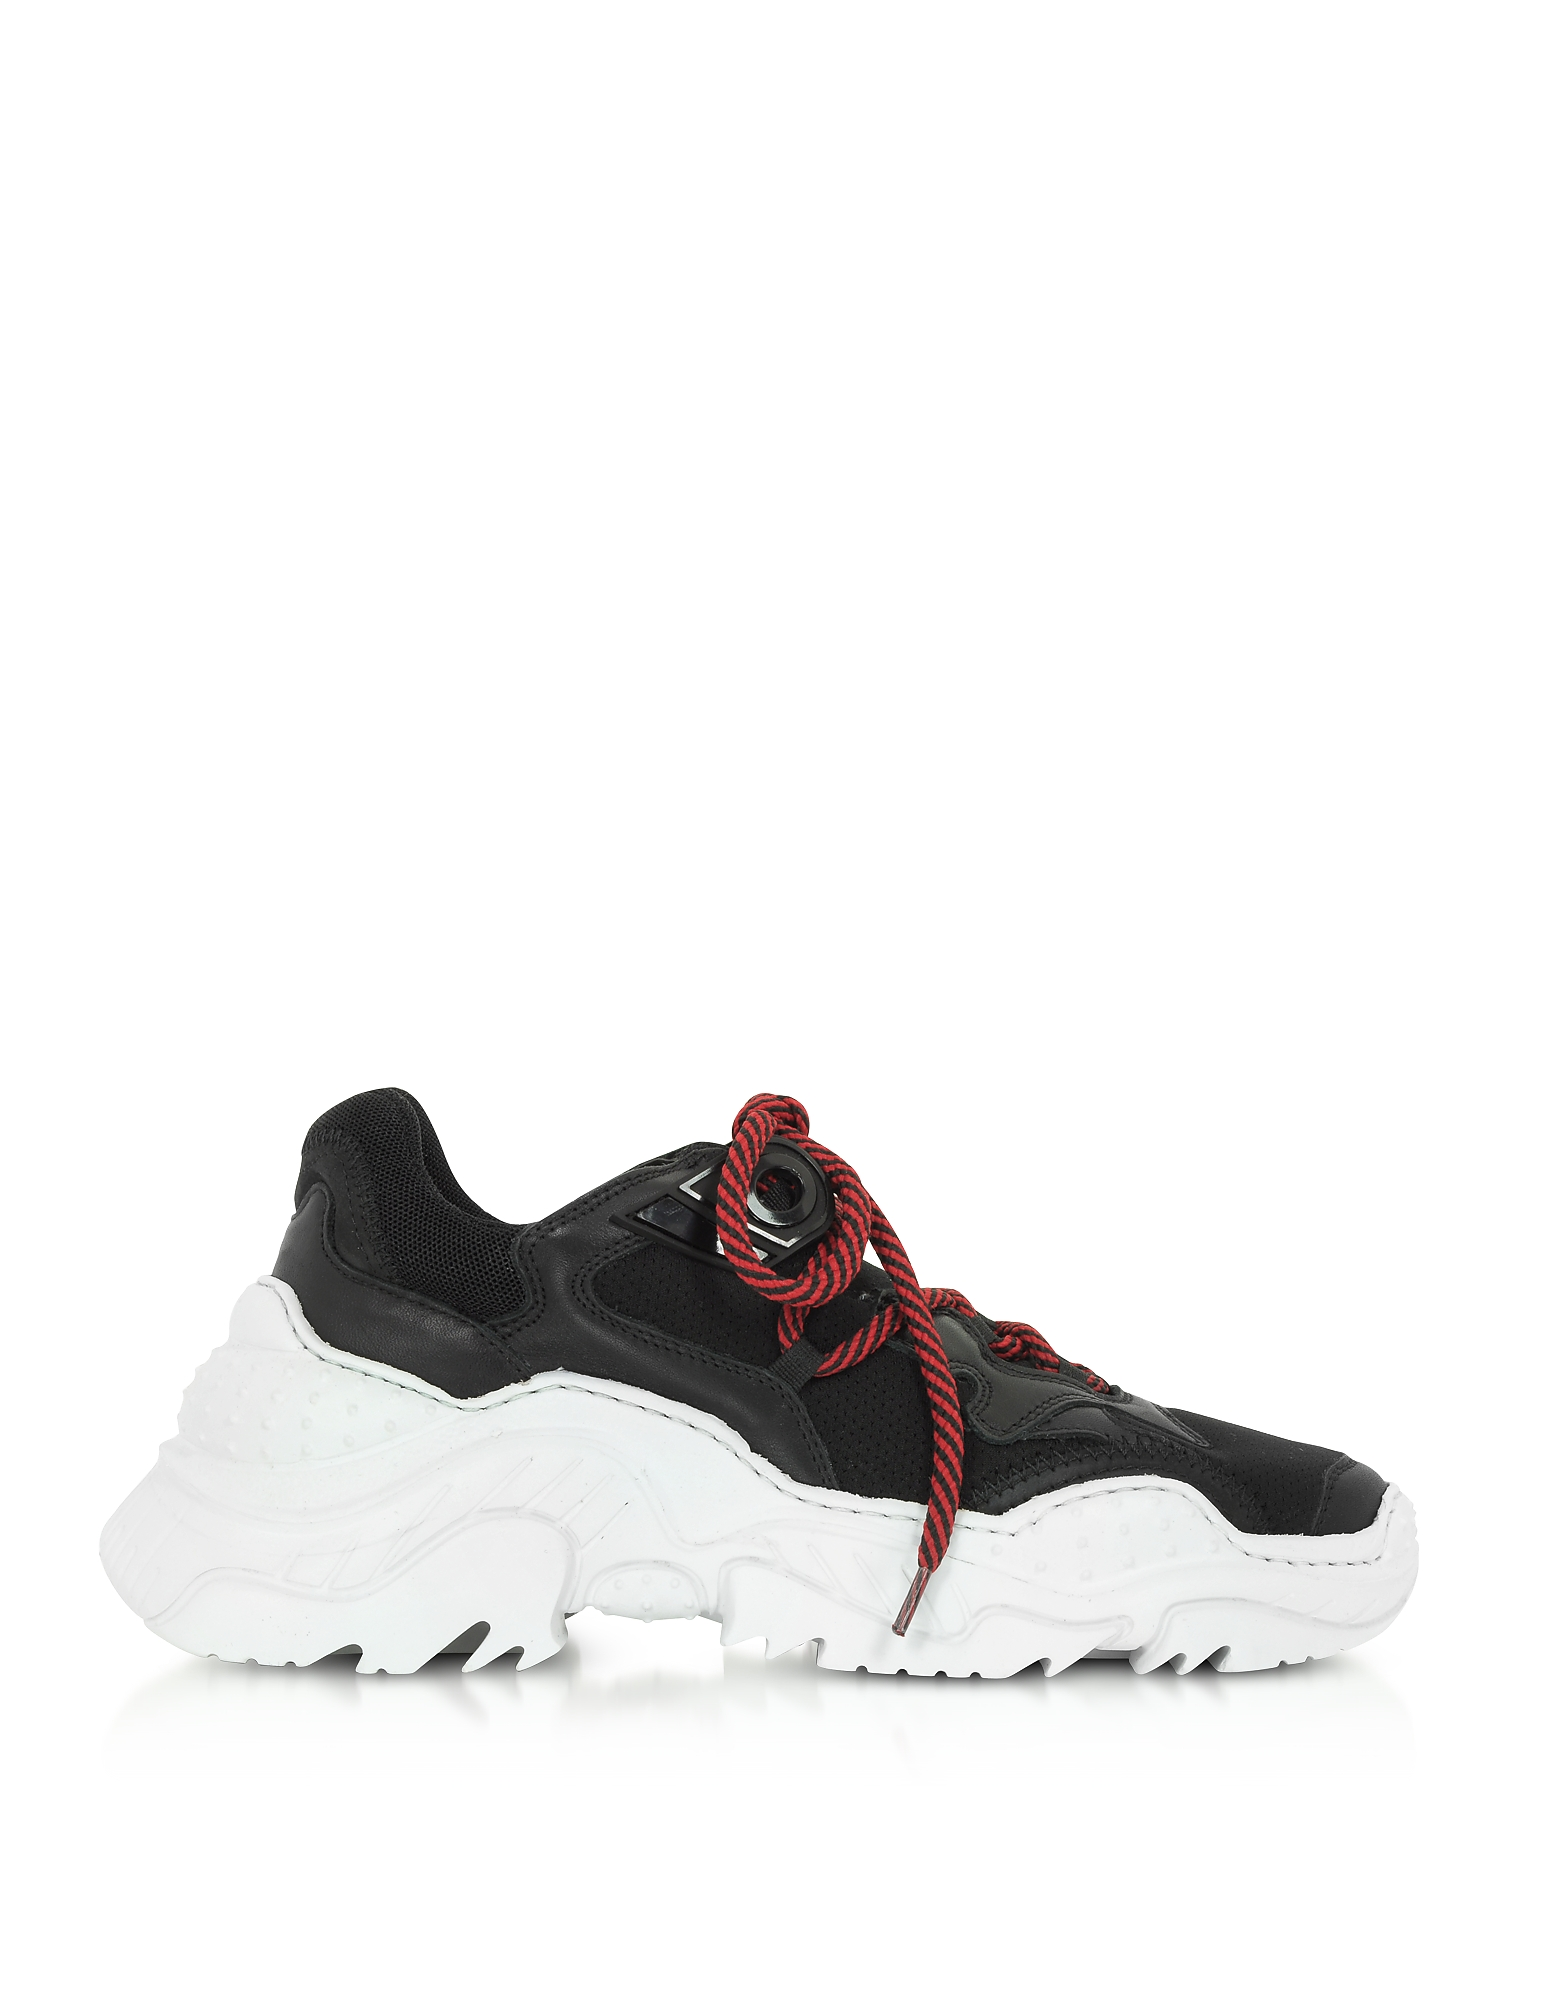 N°21 Designer Shoes, Black Synthetic & Leather Sneakers